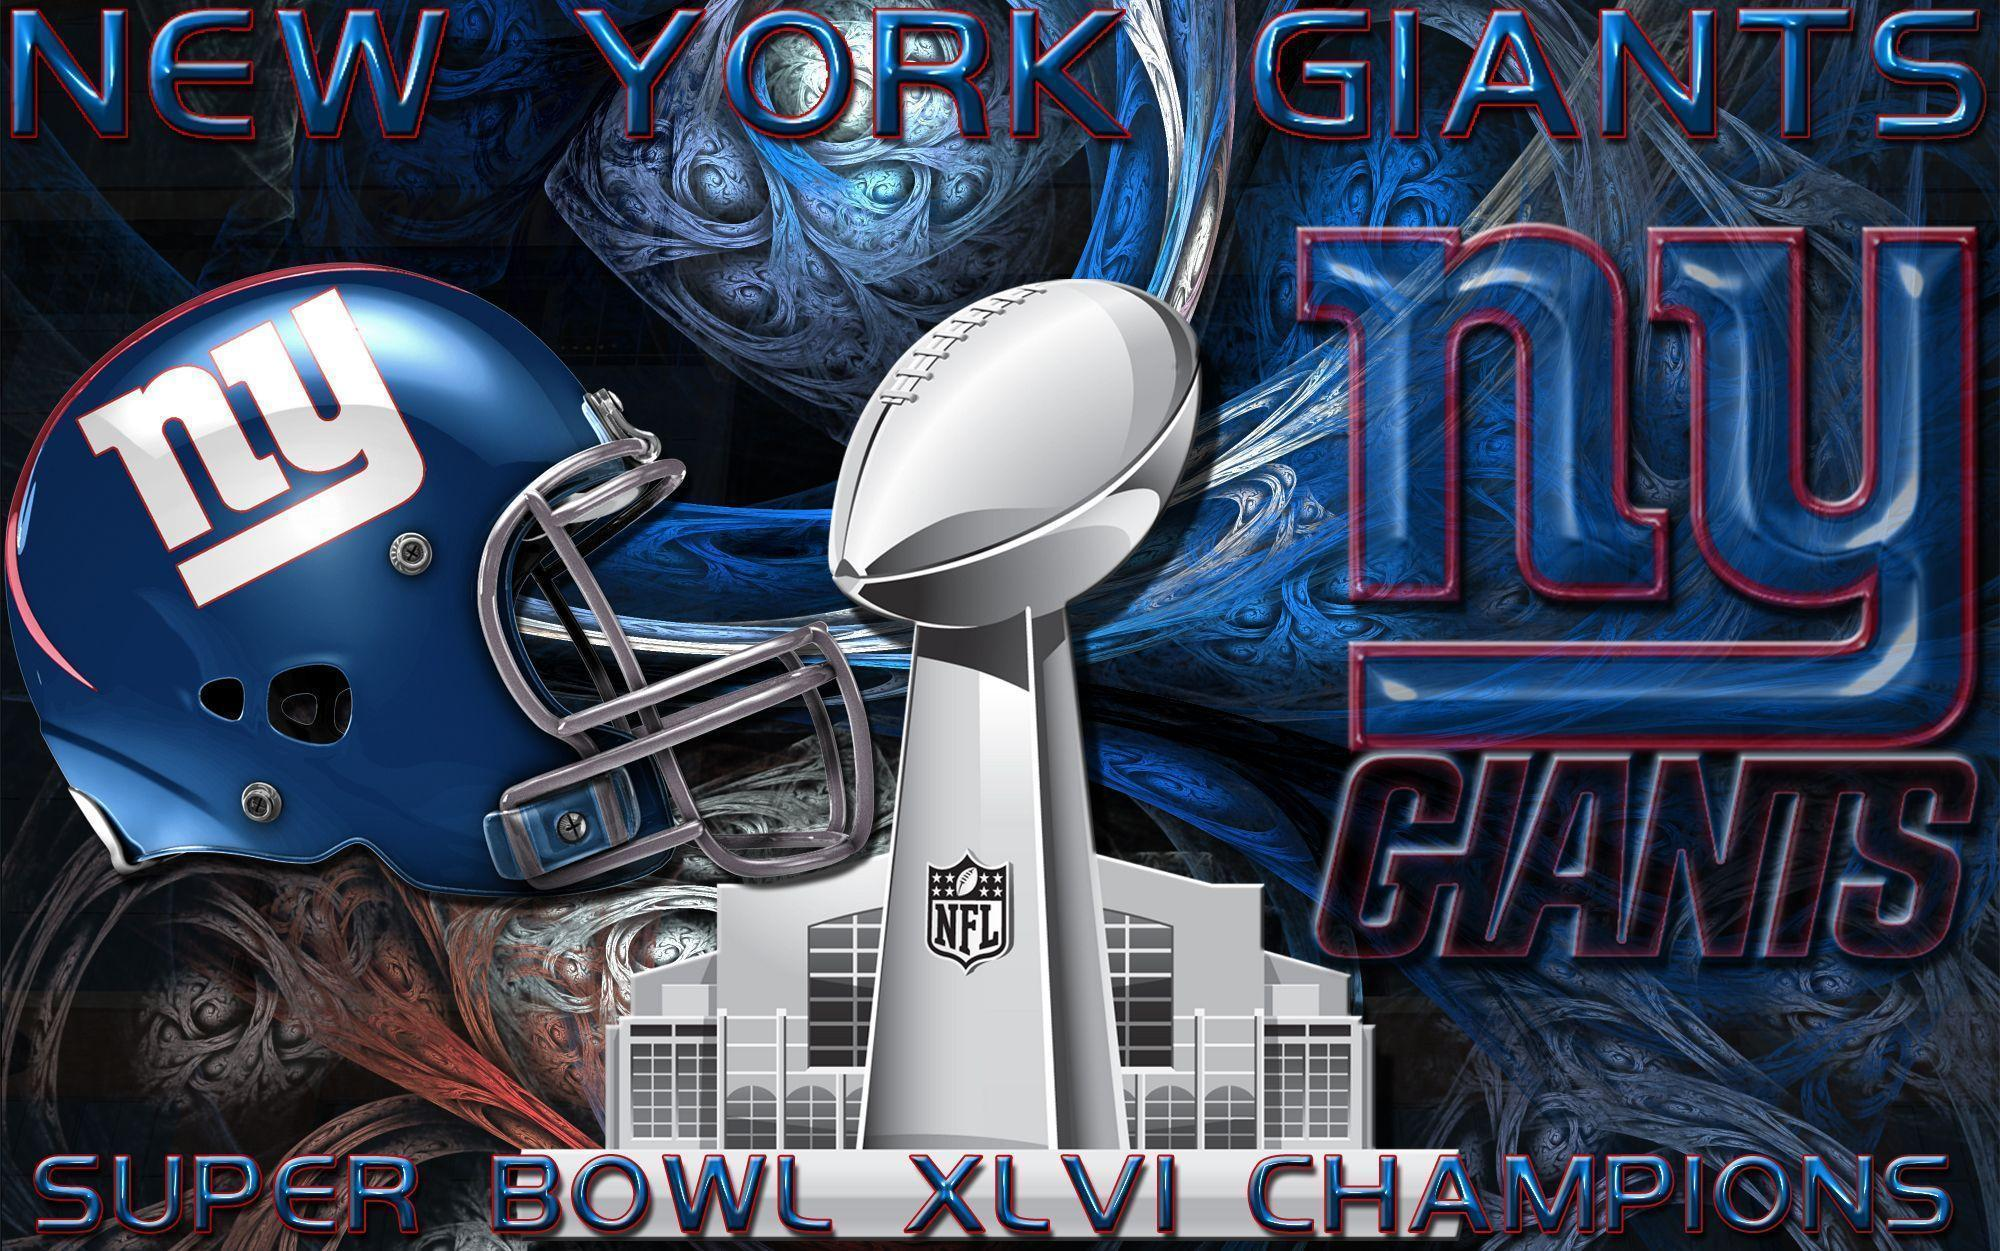 Wallpapers By Wicked Shadows: New York Giants Super Bowl XLVI